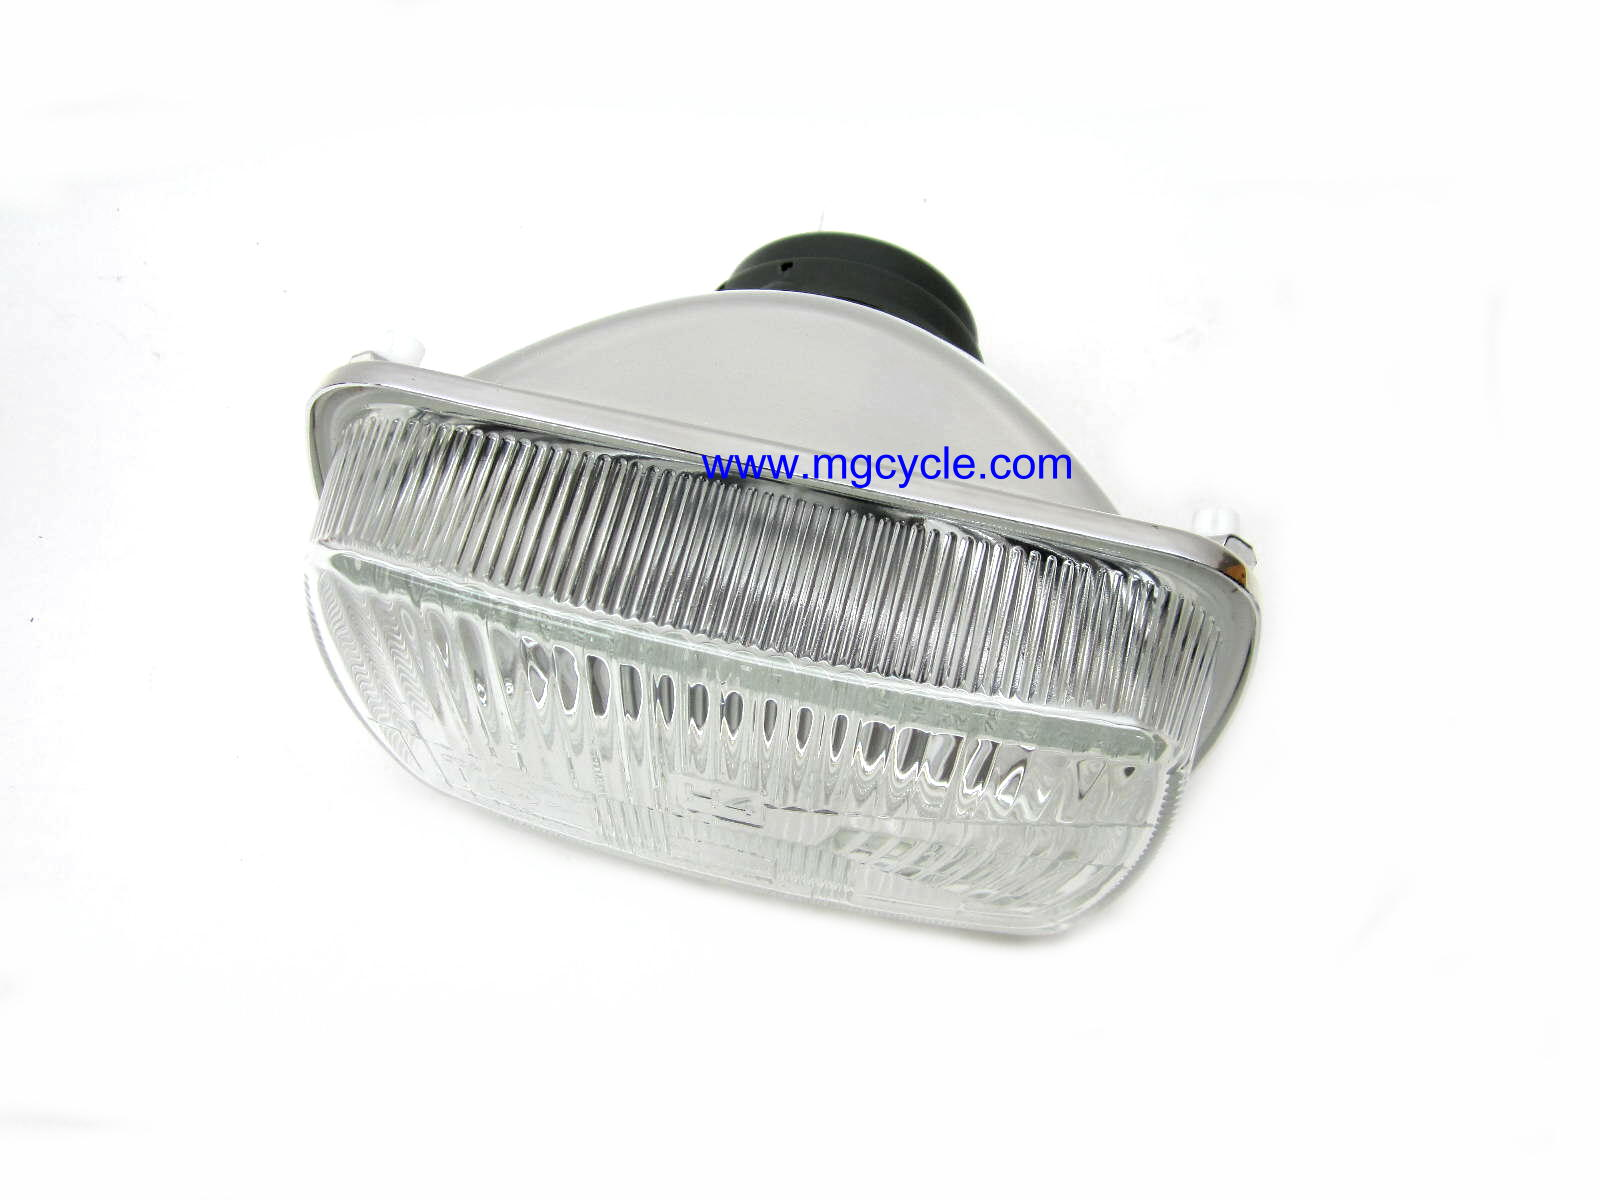 euro headlight, rectangular for fairing models 1980s-90s